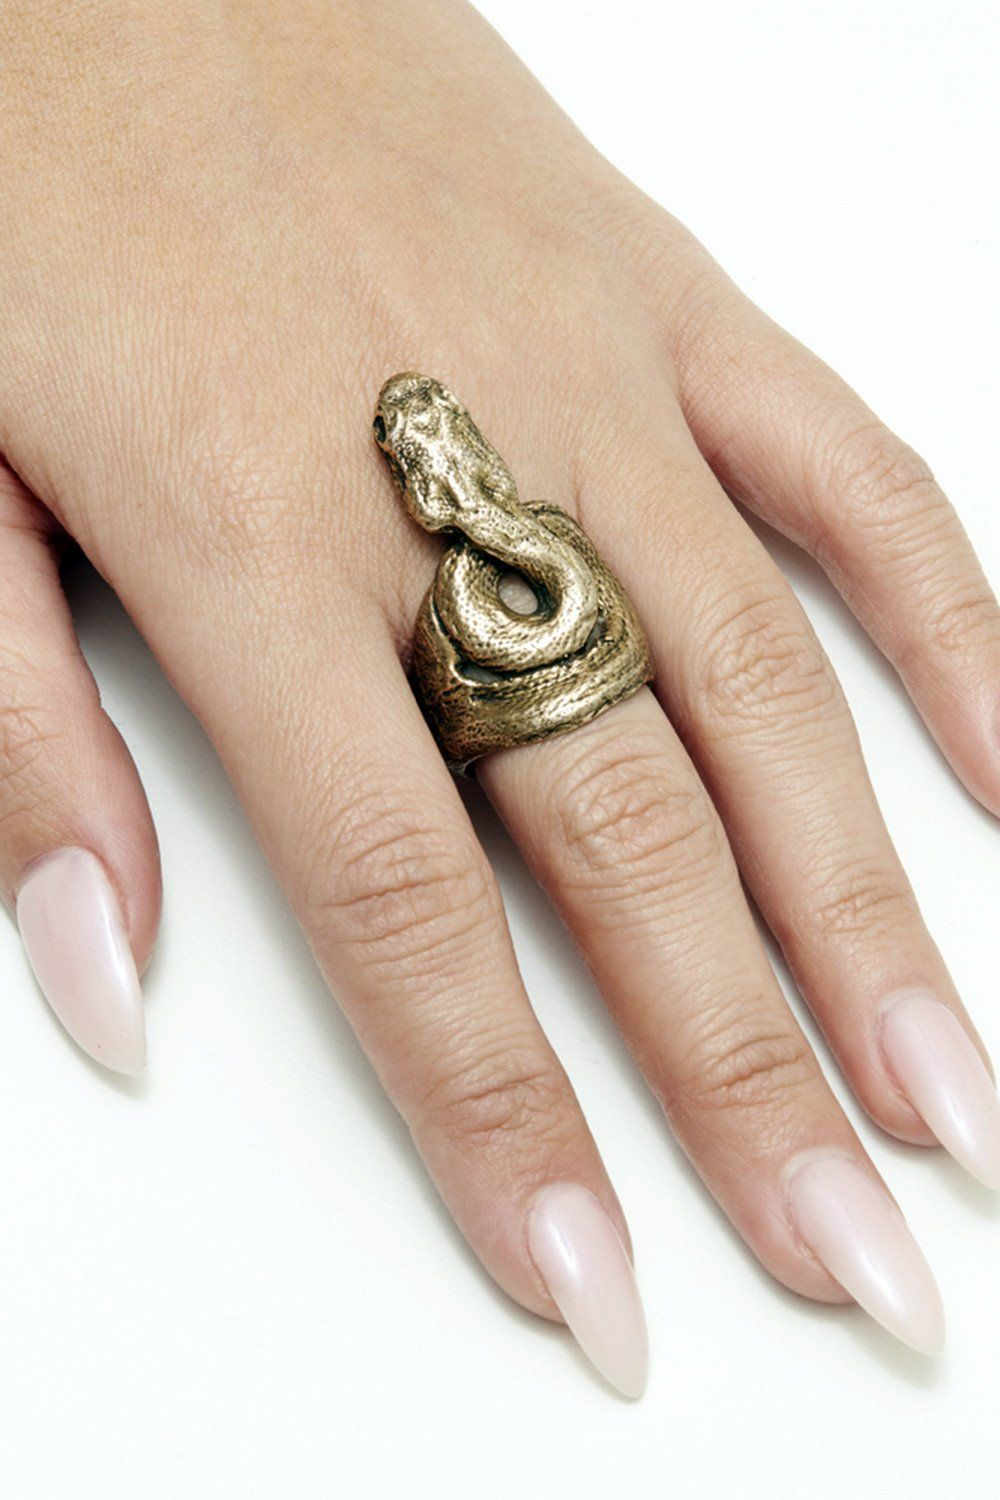 PRE-ORDER The Ishta Snake Ring By Earthling Jewelry, Accessories, Earthling, BACKBITE